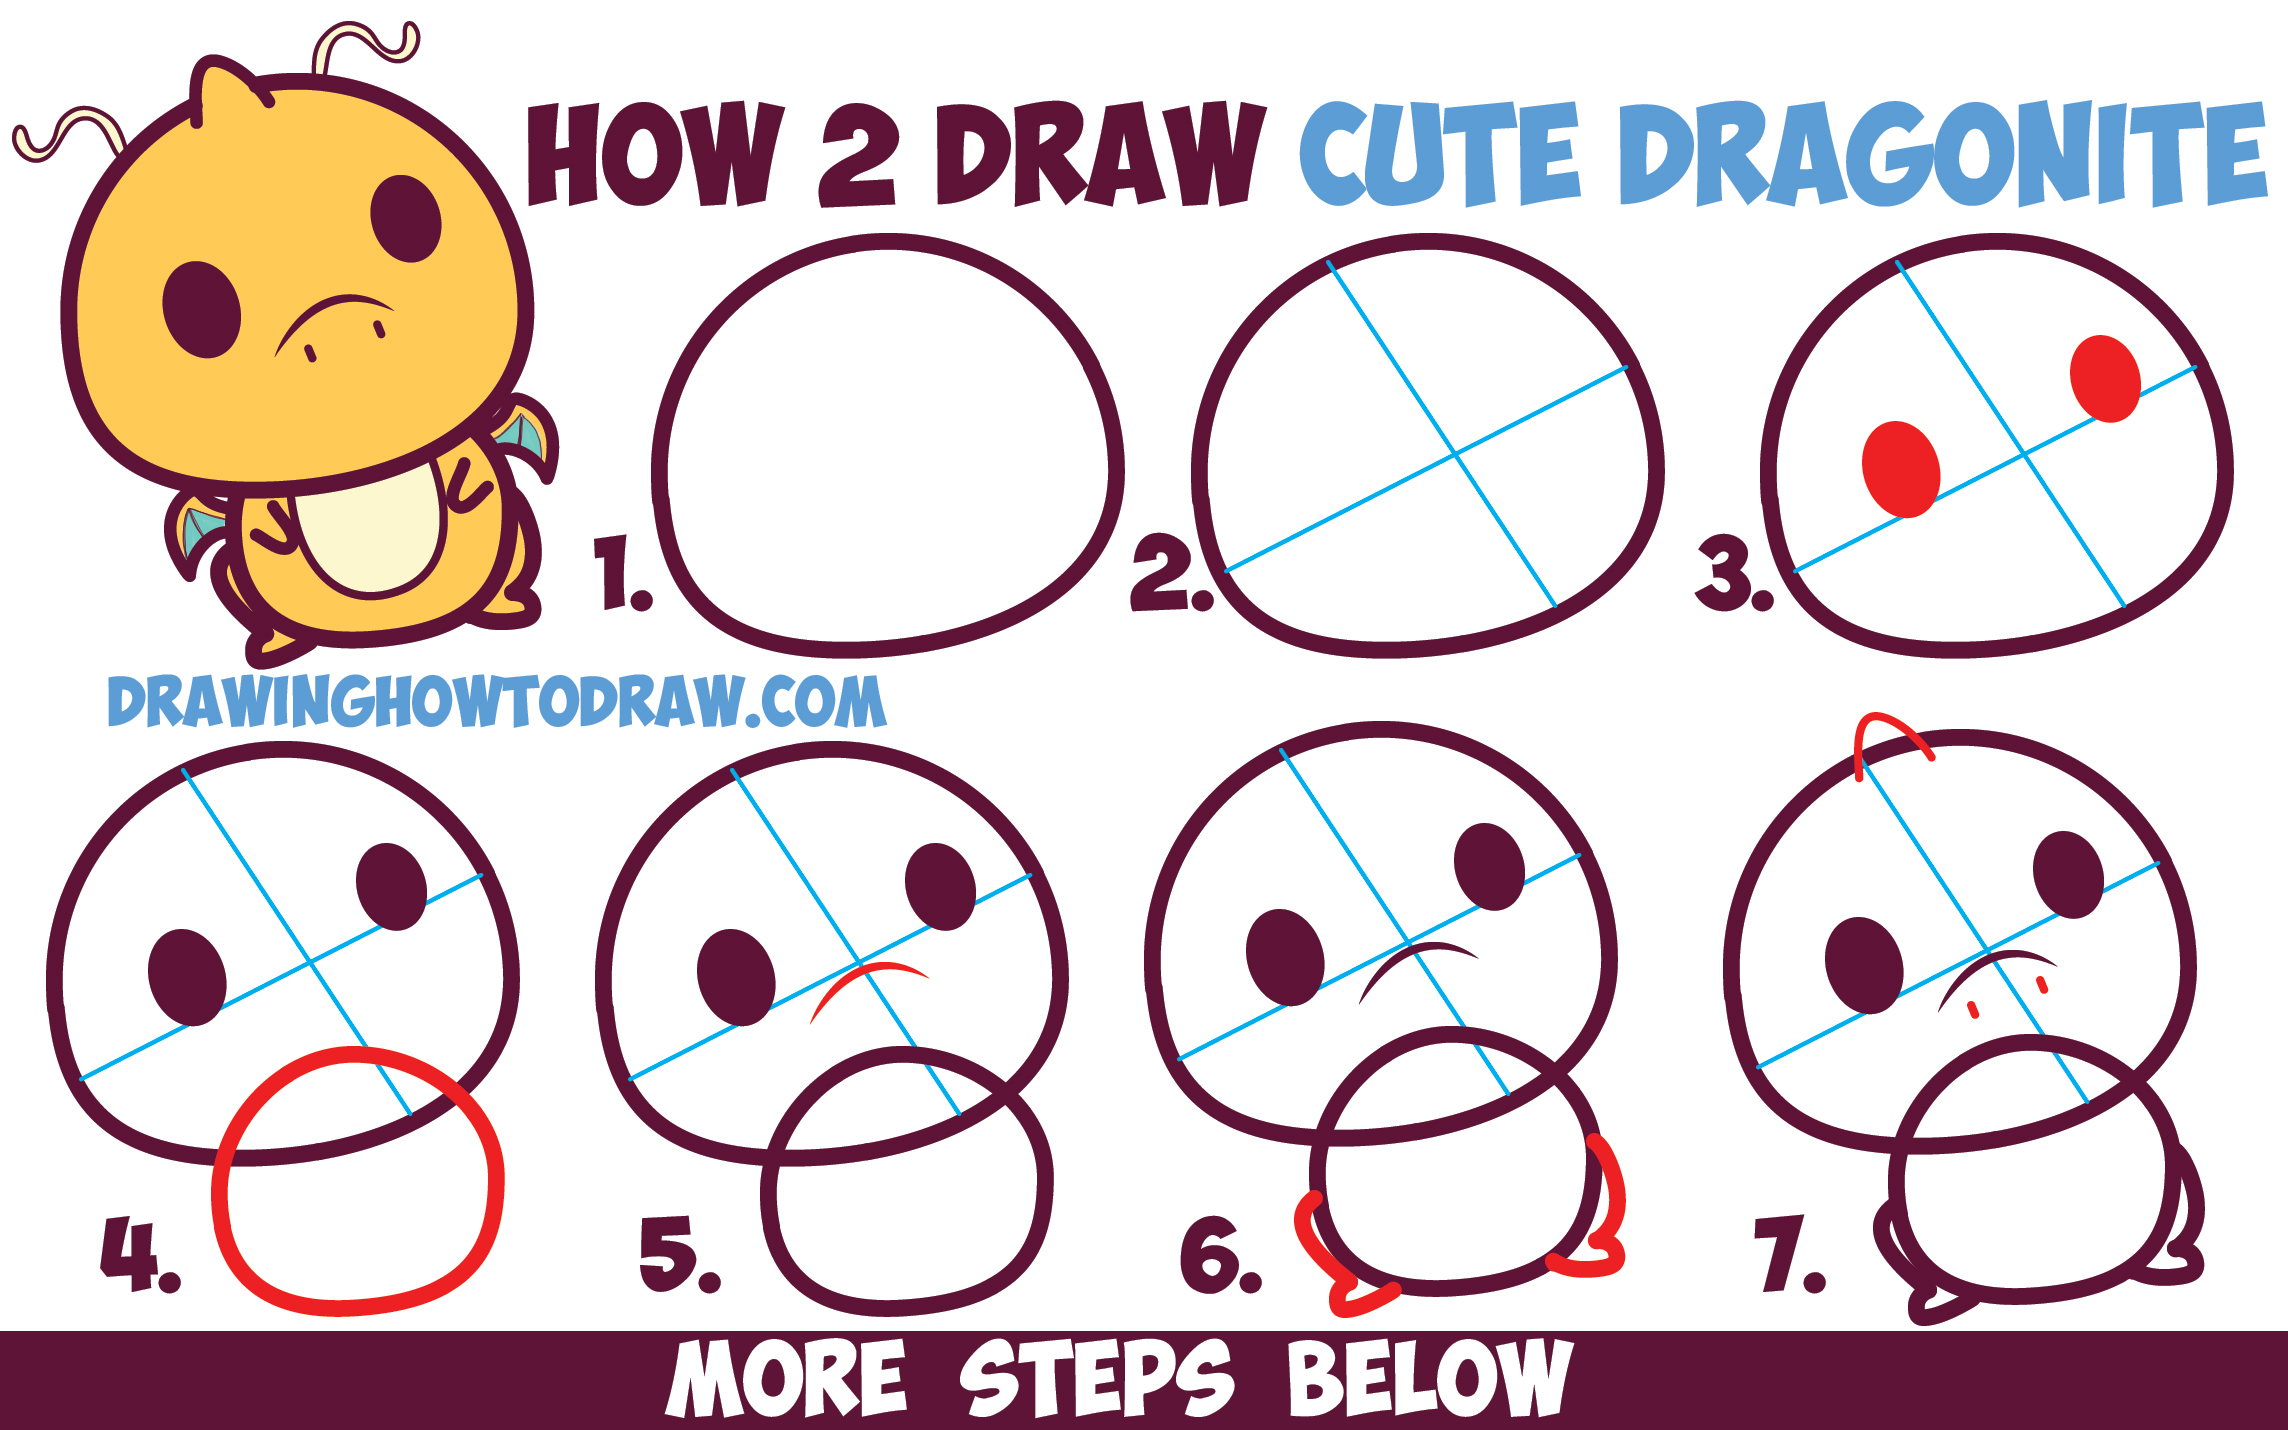 How to Draw Cute Dragonite (Chibi / Kawaii) from Pokemon Easy Step by Step Drawing Lesson